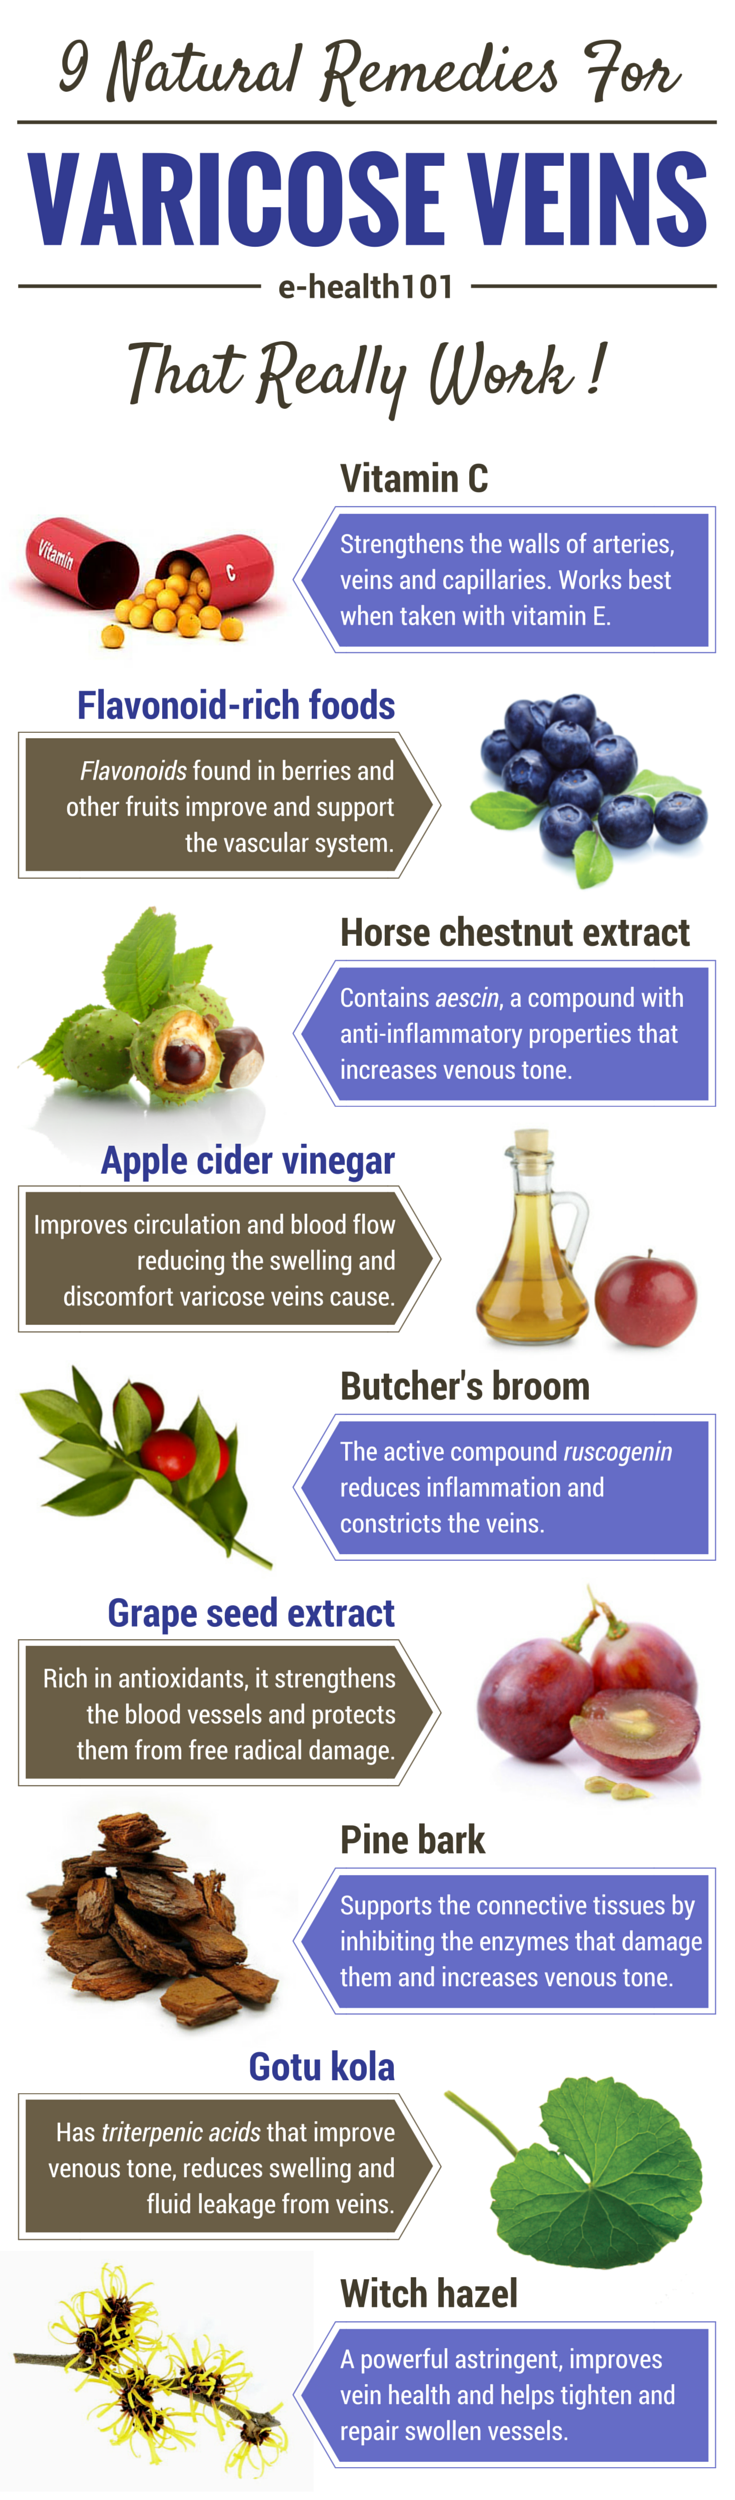 Heal Varicose Veins With These 9 Natural Remedies Infographic